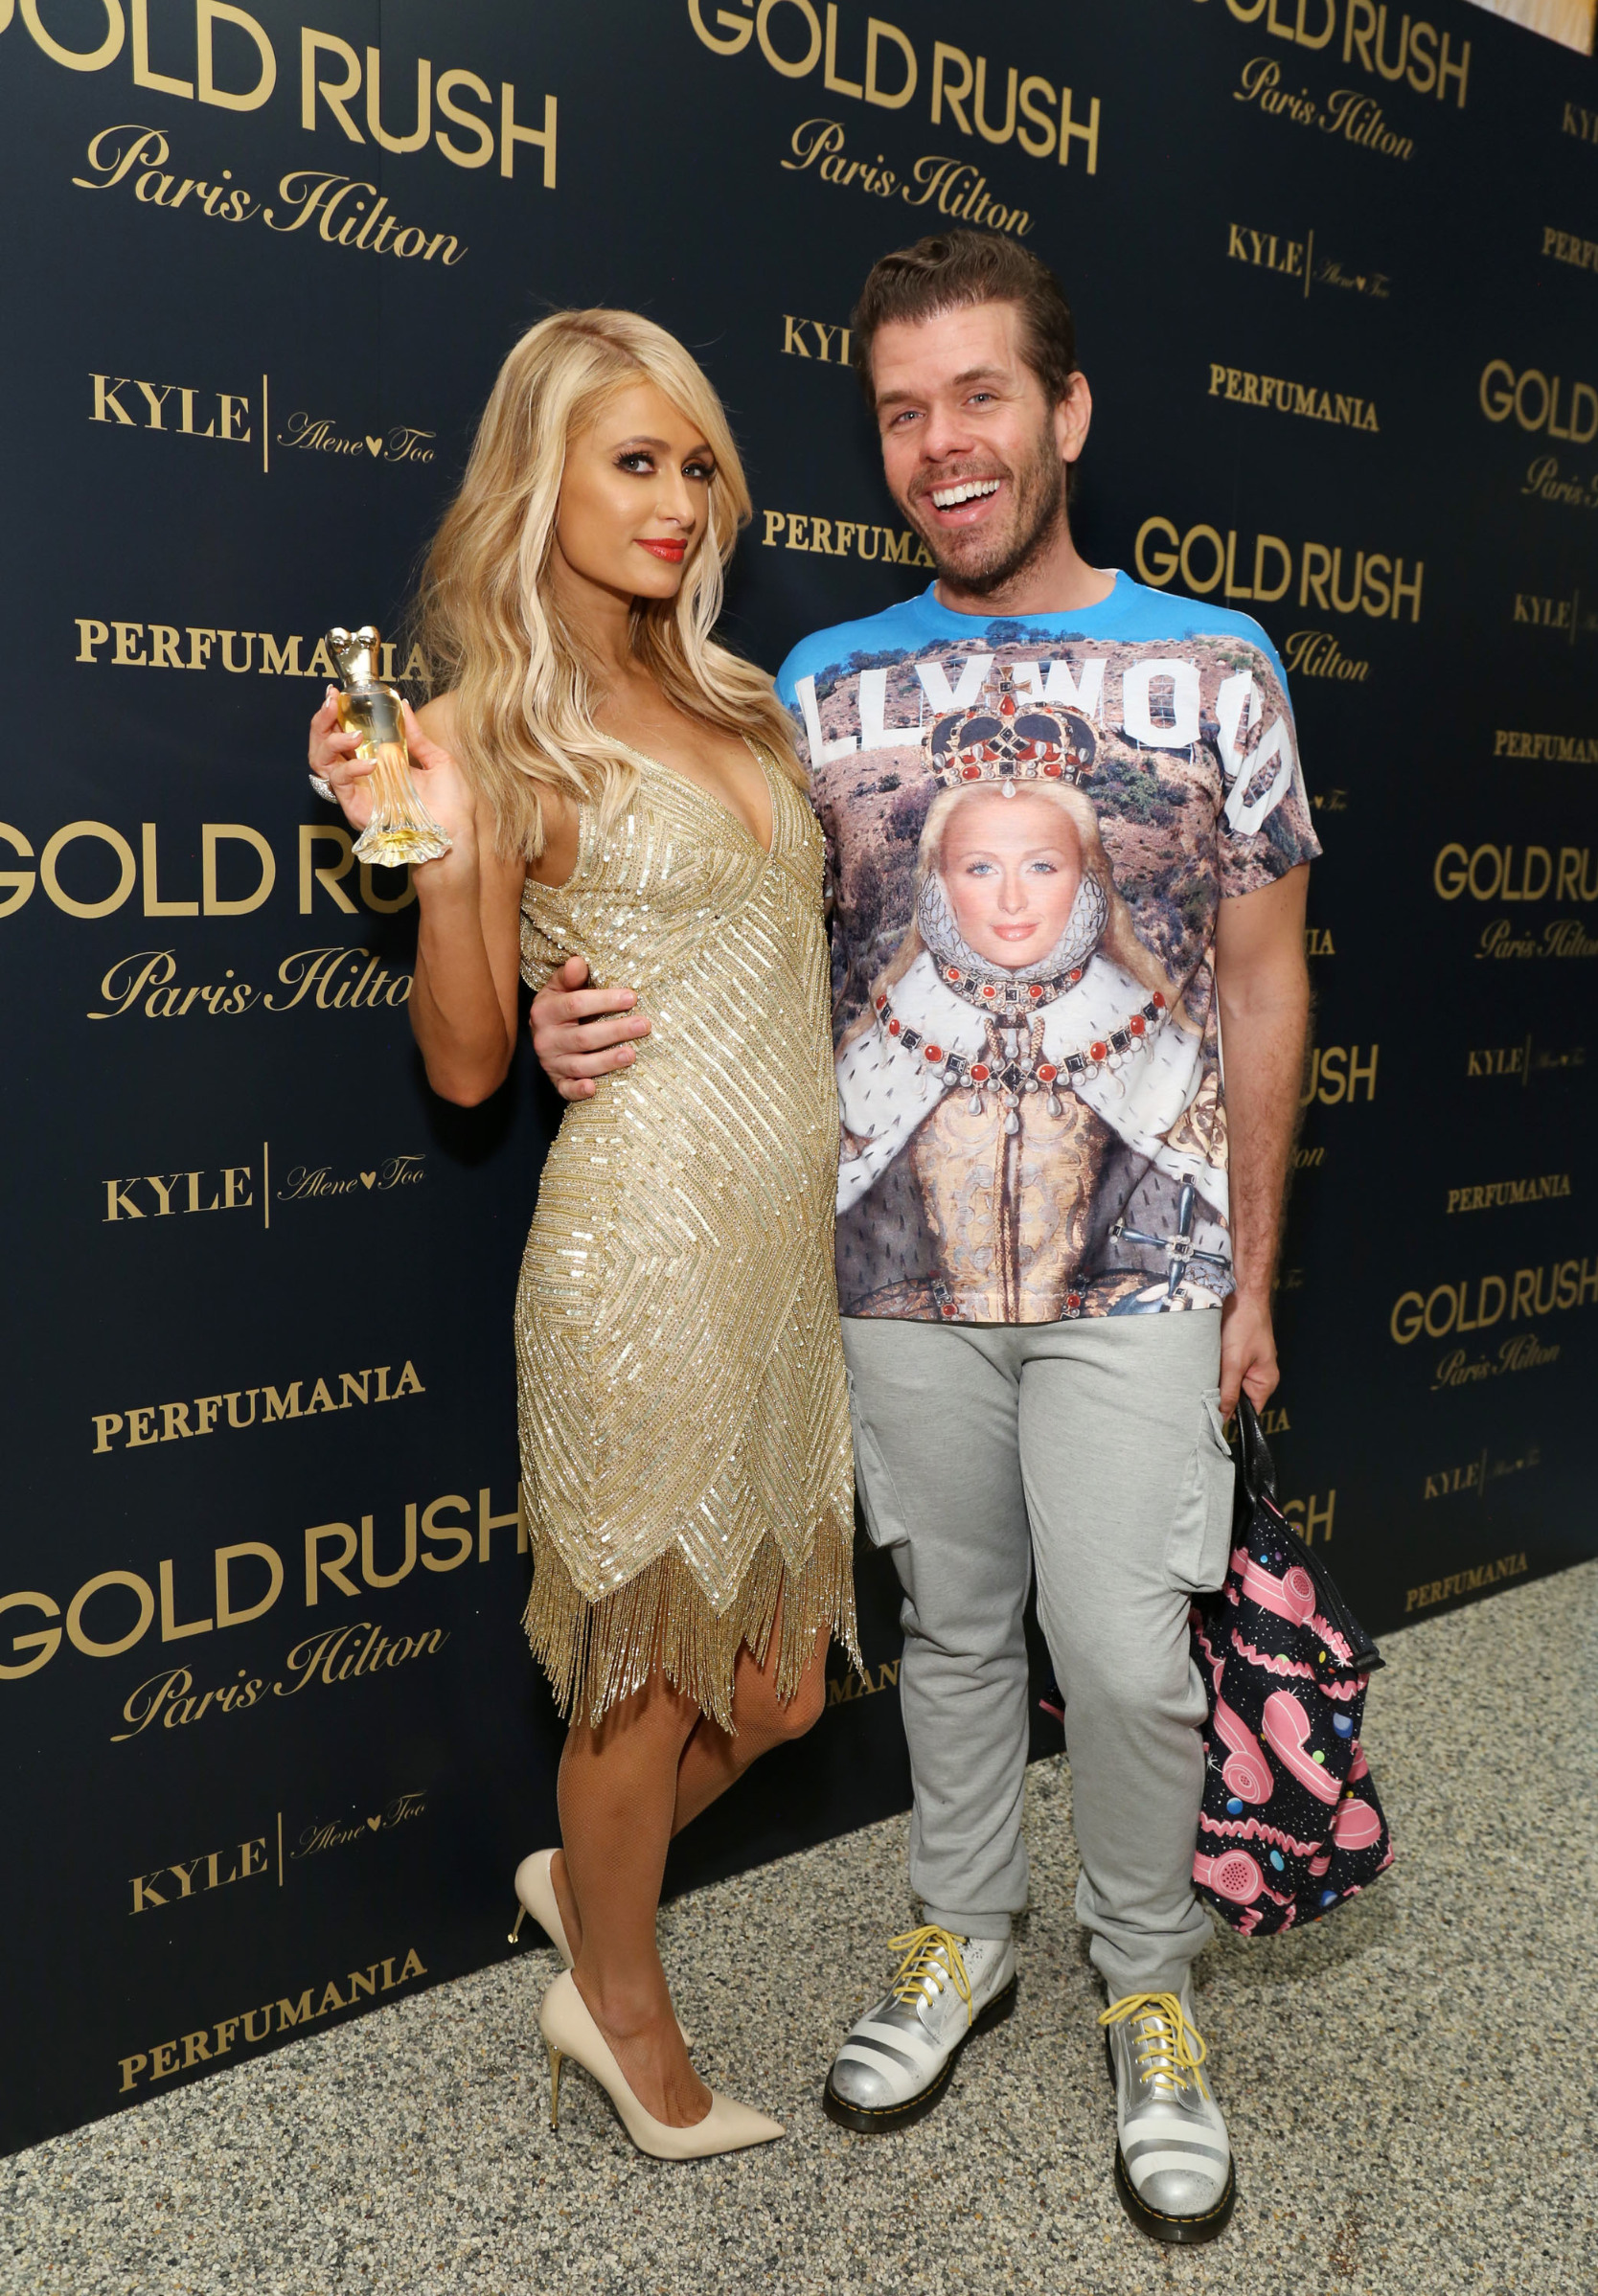 /Paris Hilton, Perez Hilton Paris Hilton 'Gold Rush' fragrance launch, New York, USA - 29 Jun 2016 Paris Hilton Celebrates the Launch of Her 20th Fragrance GOLD RUSH at her aunt's store Kyle by Alene Too in Beverly Hills,Image: 292829888, License: Rights-managed, Restrictions: , Model Release: no, Credit line: Sara Jaye Weiss / Shutterstock Editorial / Profimedia